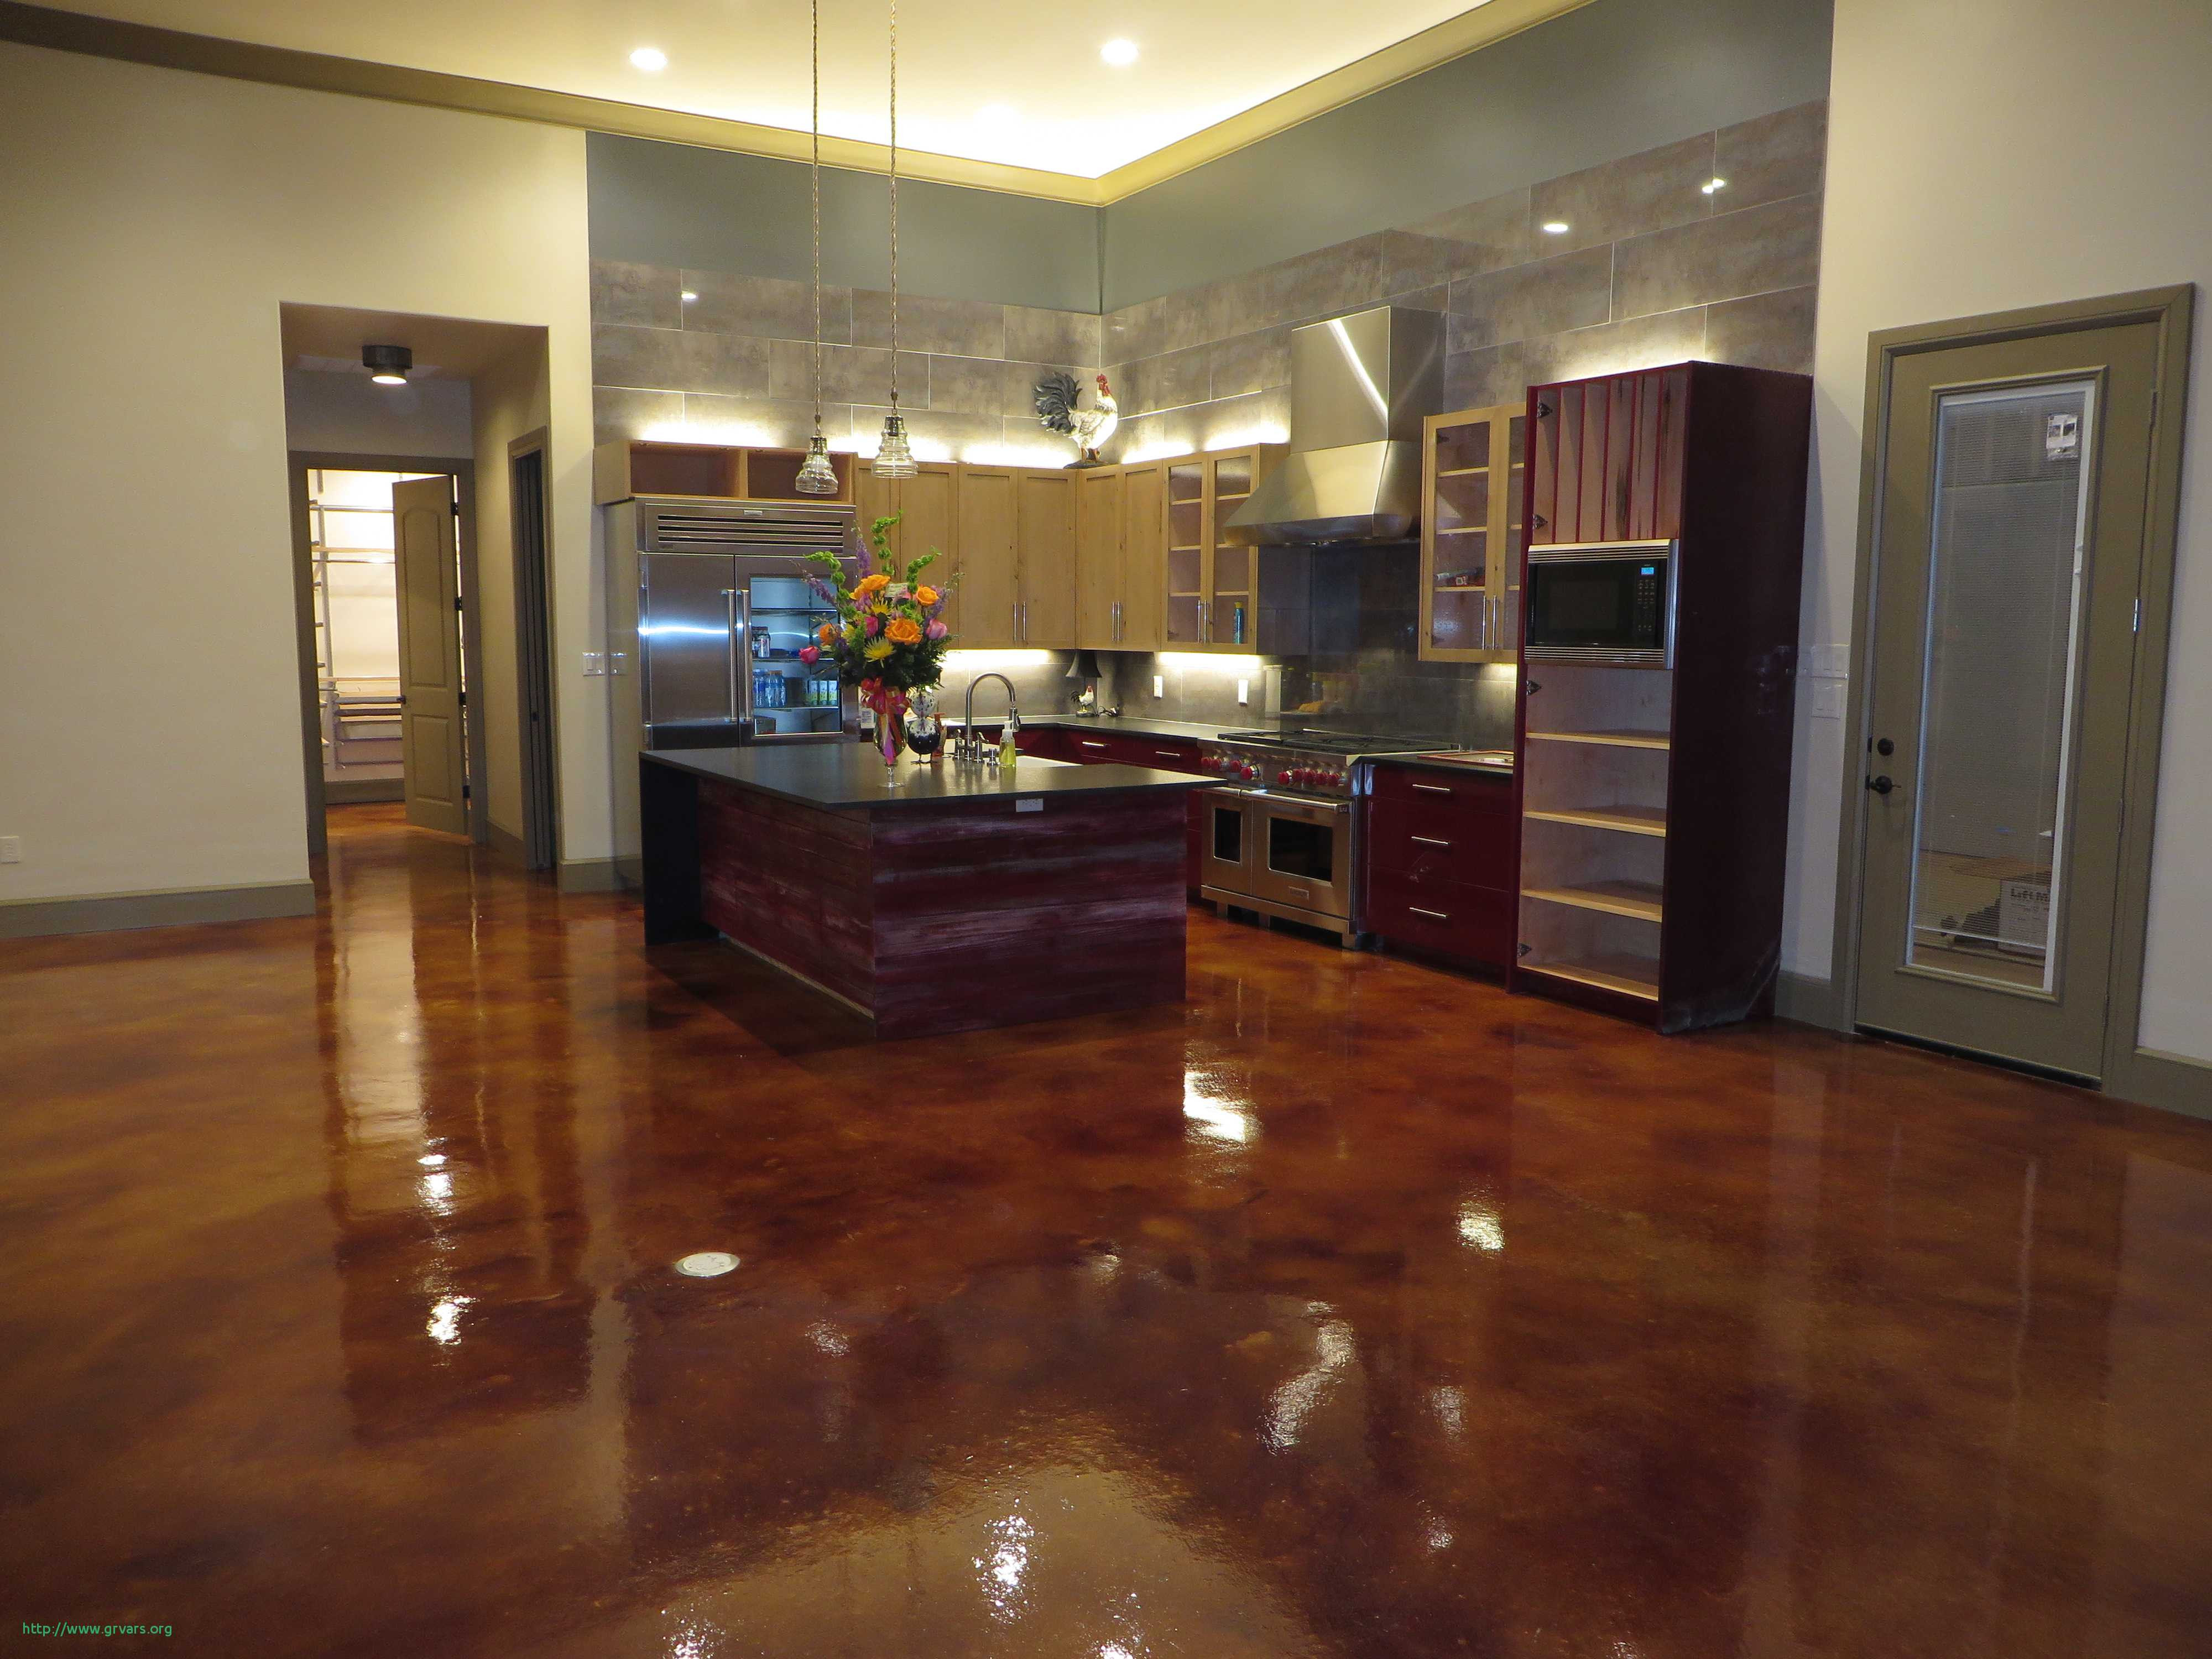 hardwood flooring pittsburgh pa of 20 a‰lagant off the floor pittsburgh ideas blog pertaining to floored steel homes plans pole building home plans free floor plan luxury